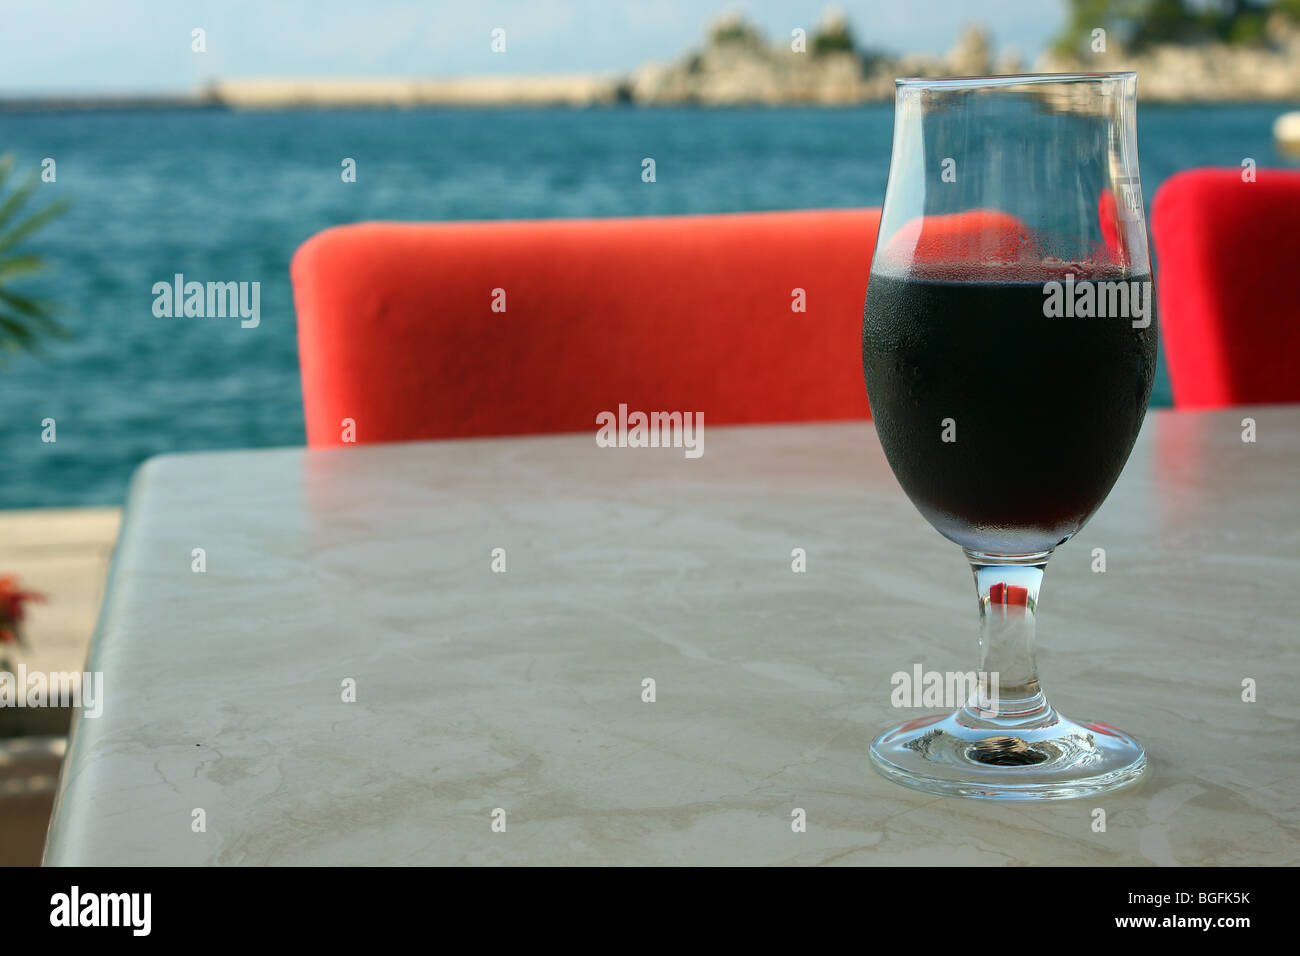 Red wine glass on table - Stock Image